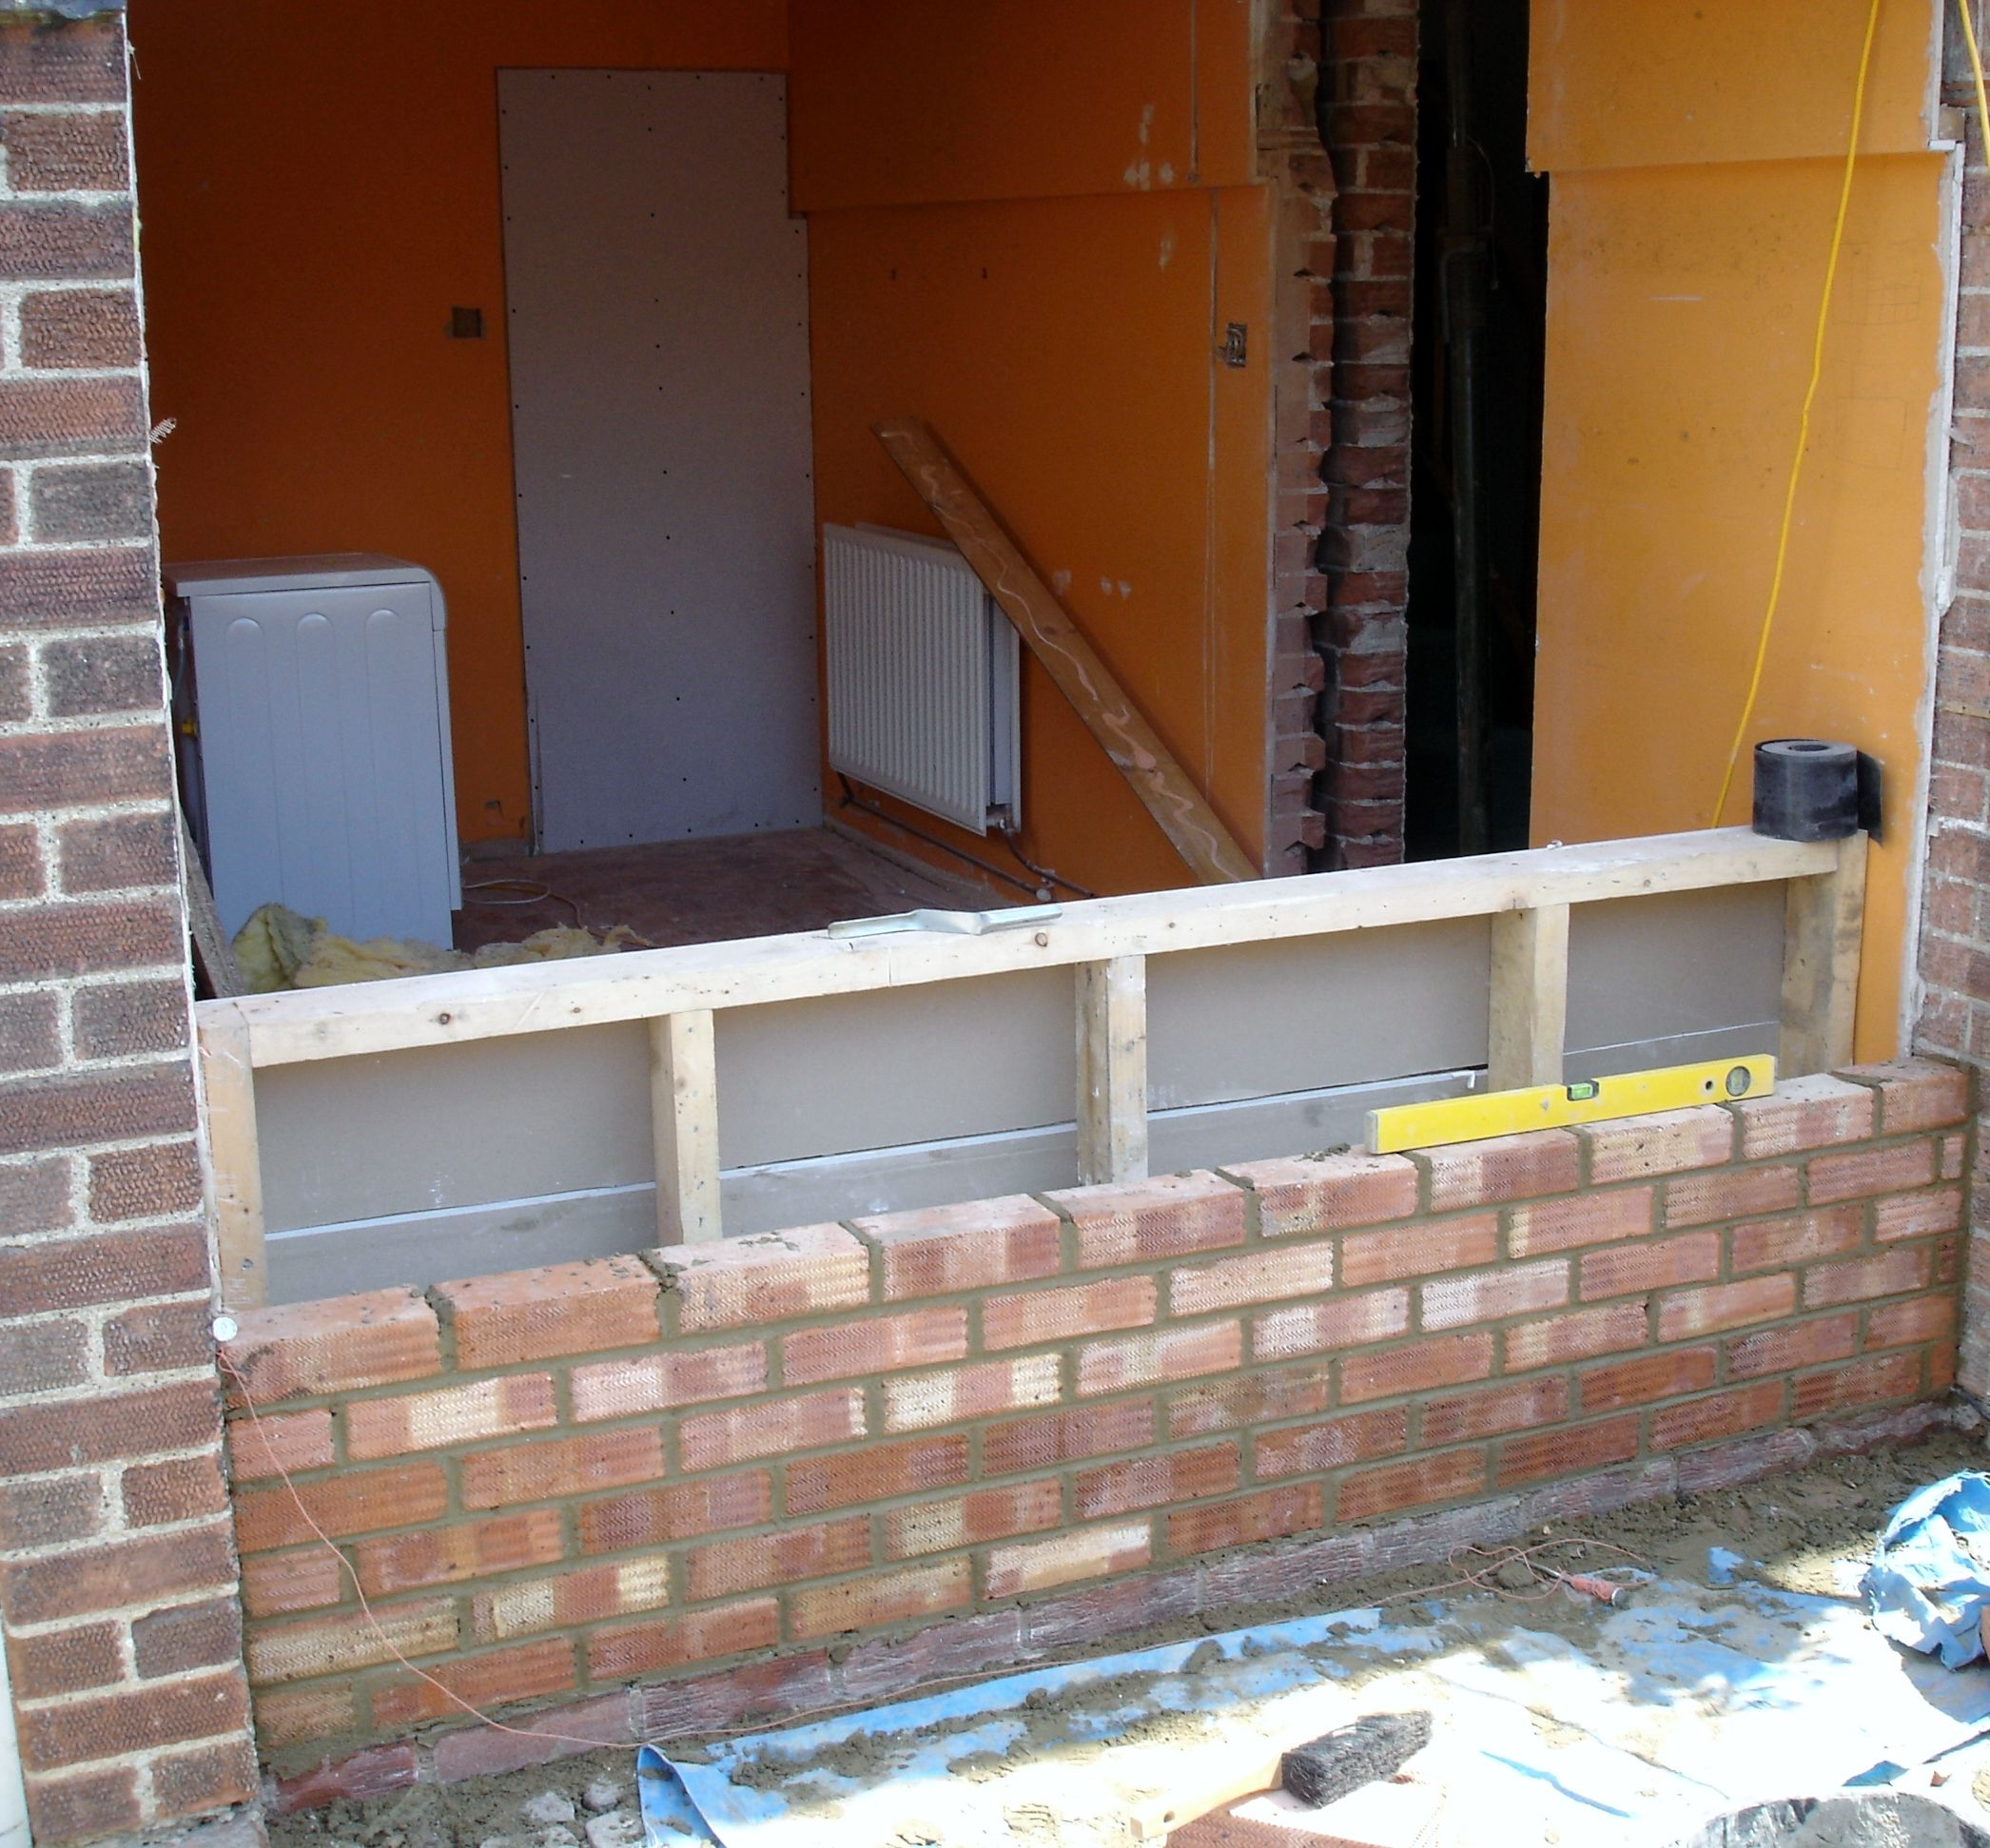 Pin By Ron Dilley On Garage Remodel Pinterest Garages Garage Remodel And Home Projects